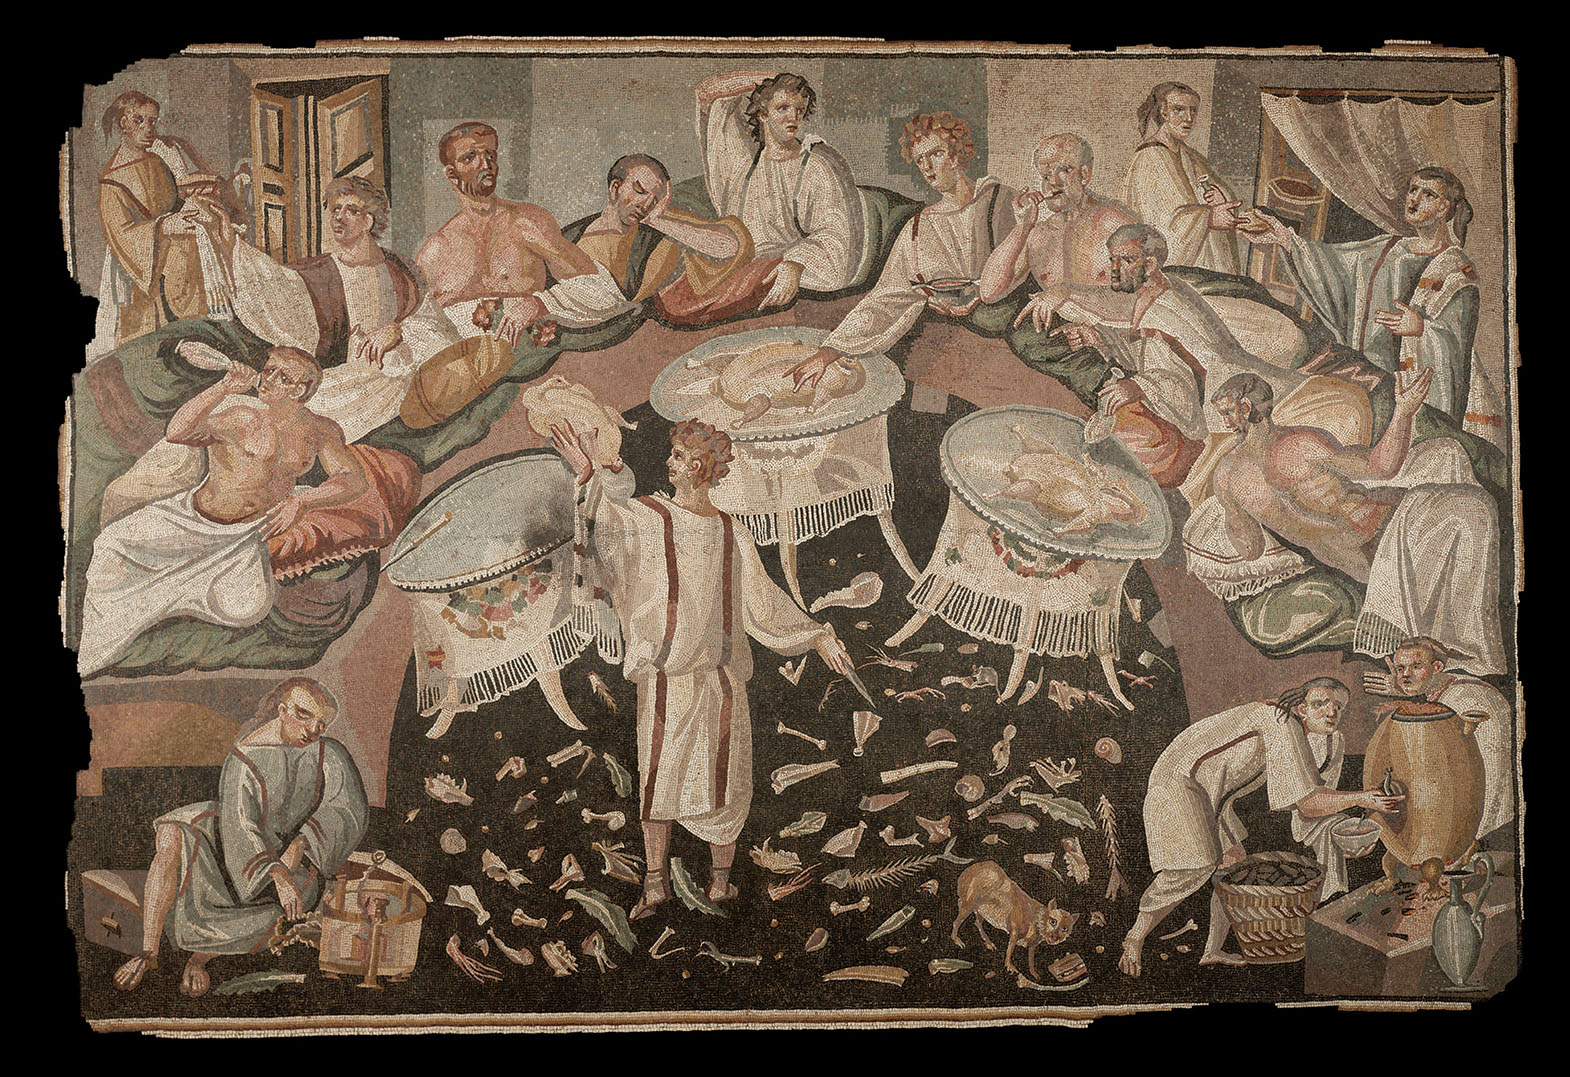 Mosaic of a Symposium with Asarotos Oikos